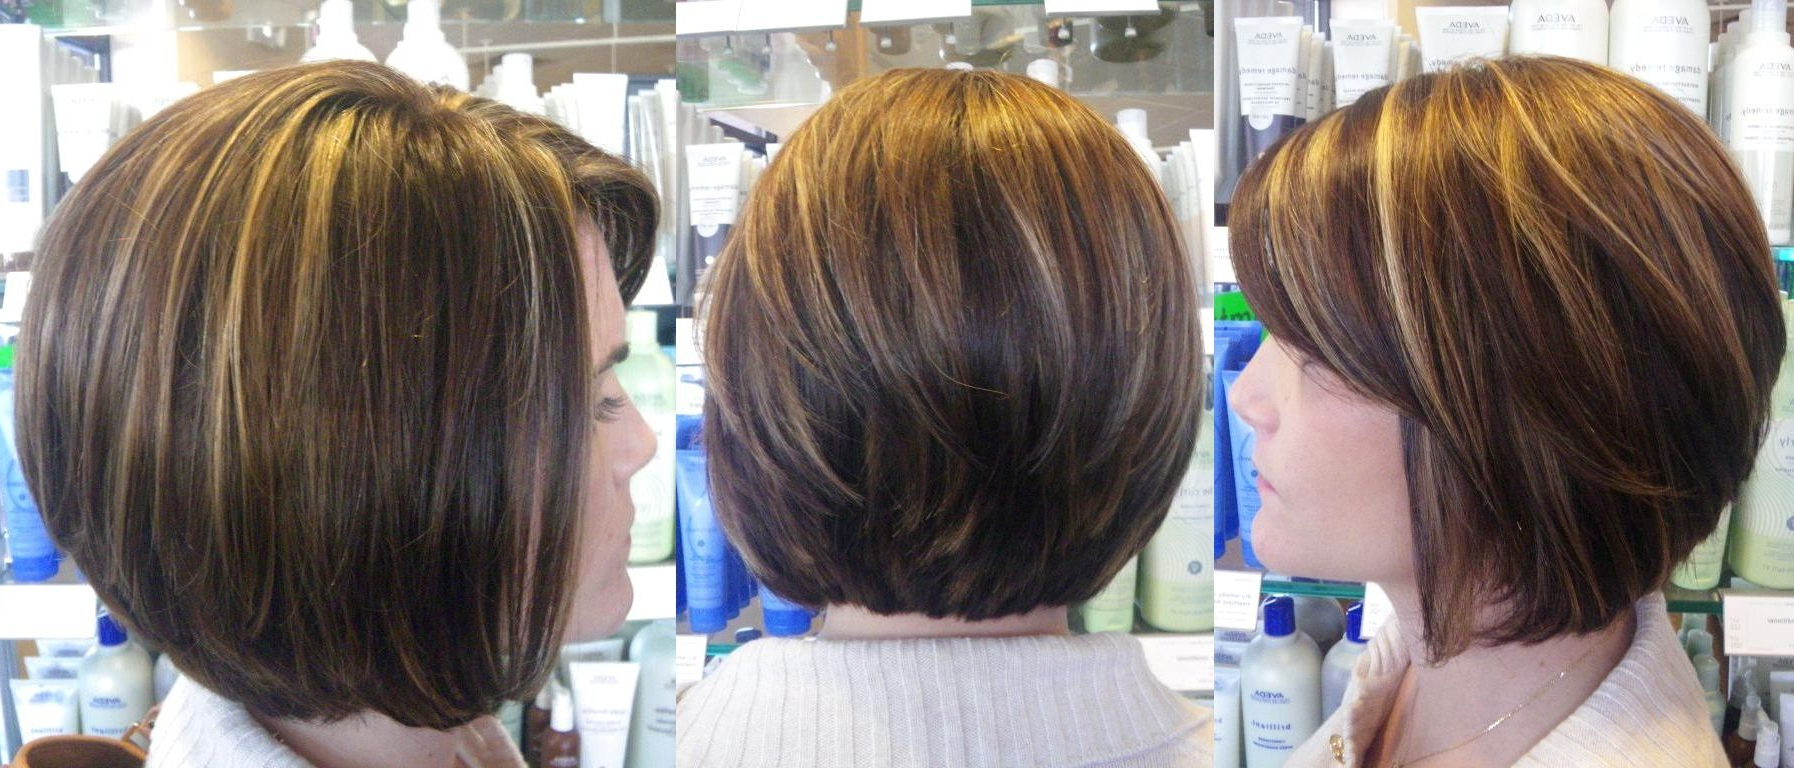 Contrasting Rich Brown With Multi Tonal Highlights Love Throughout Bob Hairstyles With Contrasting Highlights (View 3 of 20)